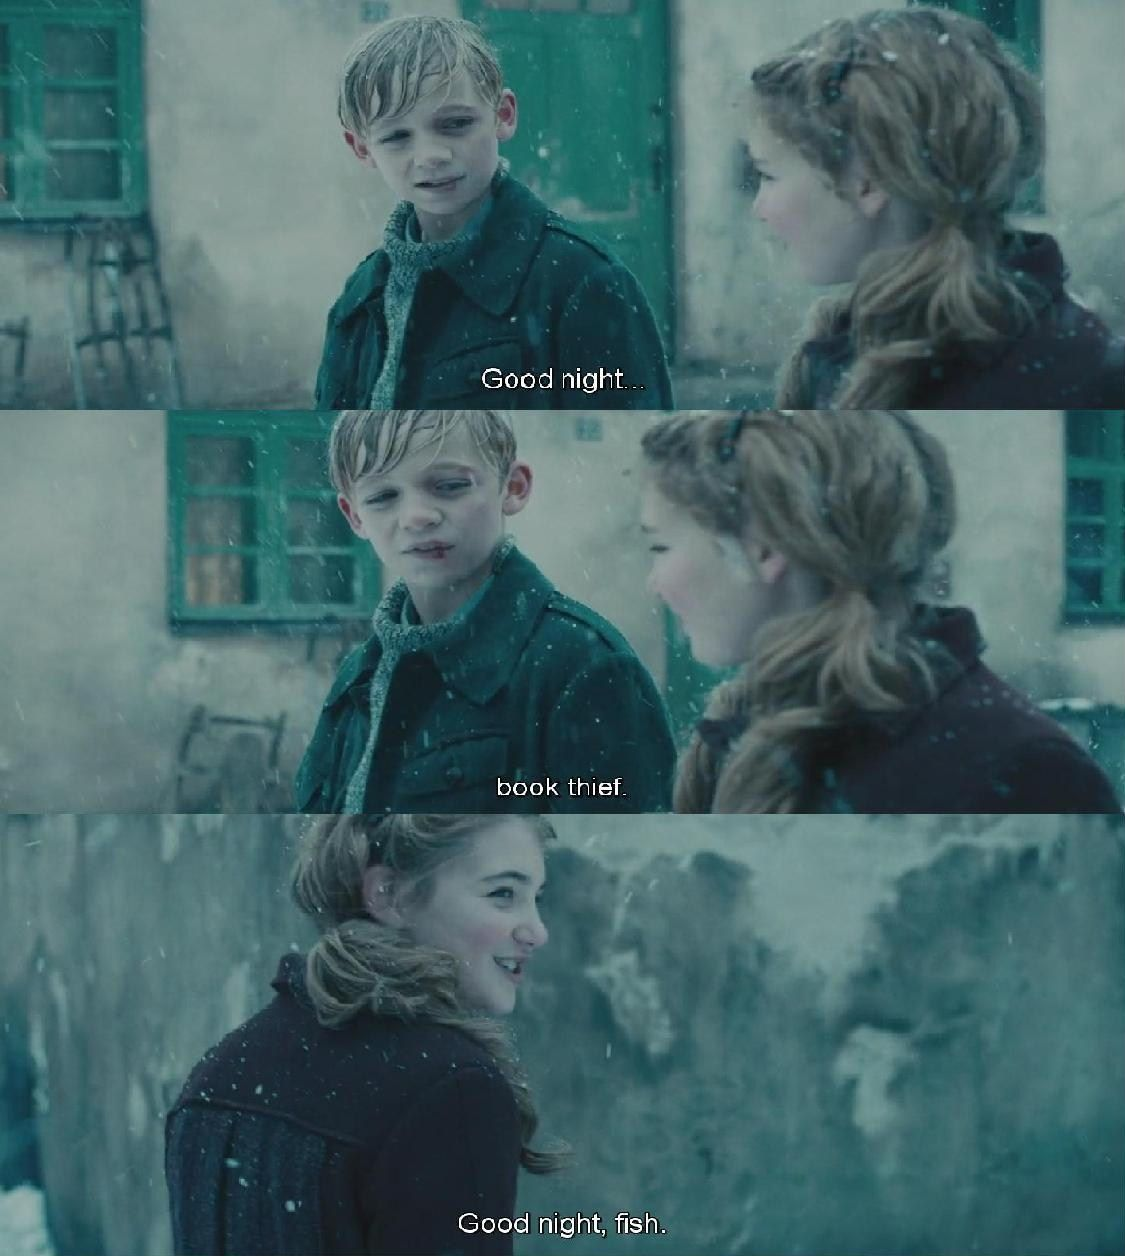 Rudy Steiner The Book Thief Quotes: The Book Thief The Day He Jumps In The River To Save Her